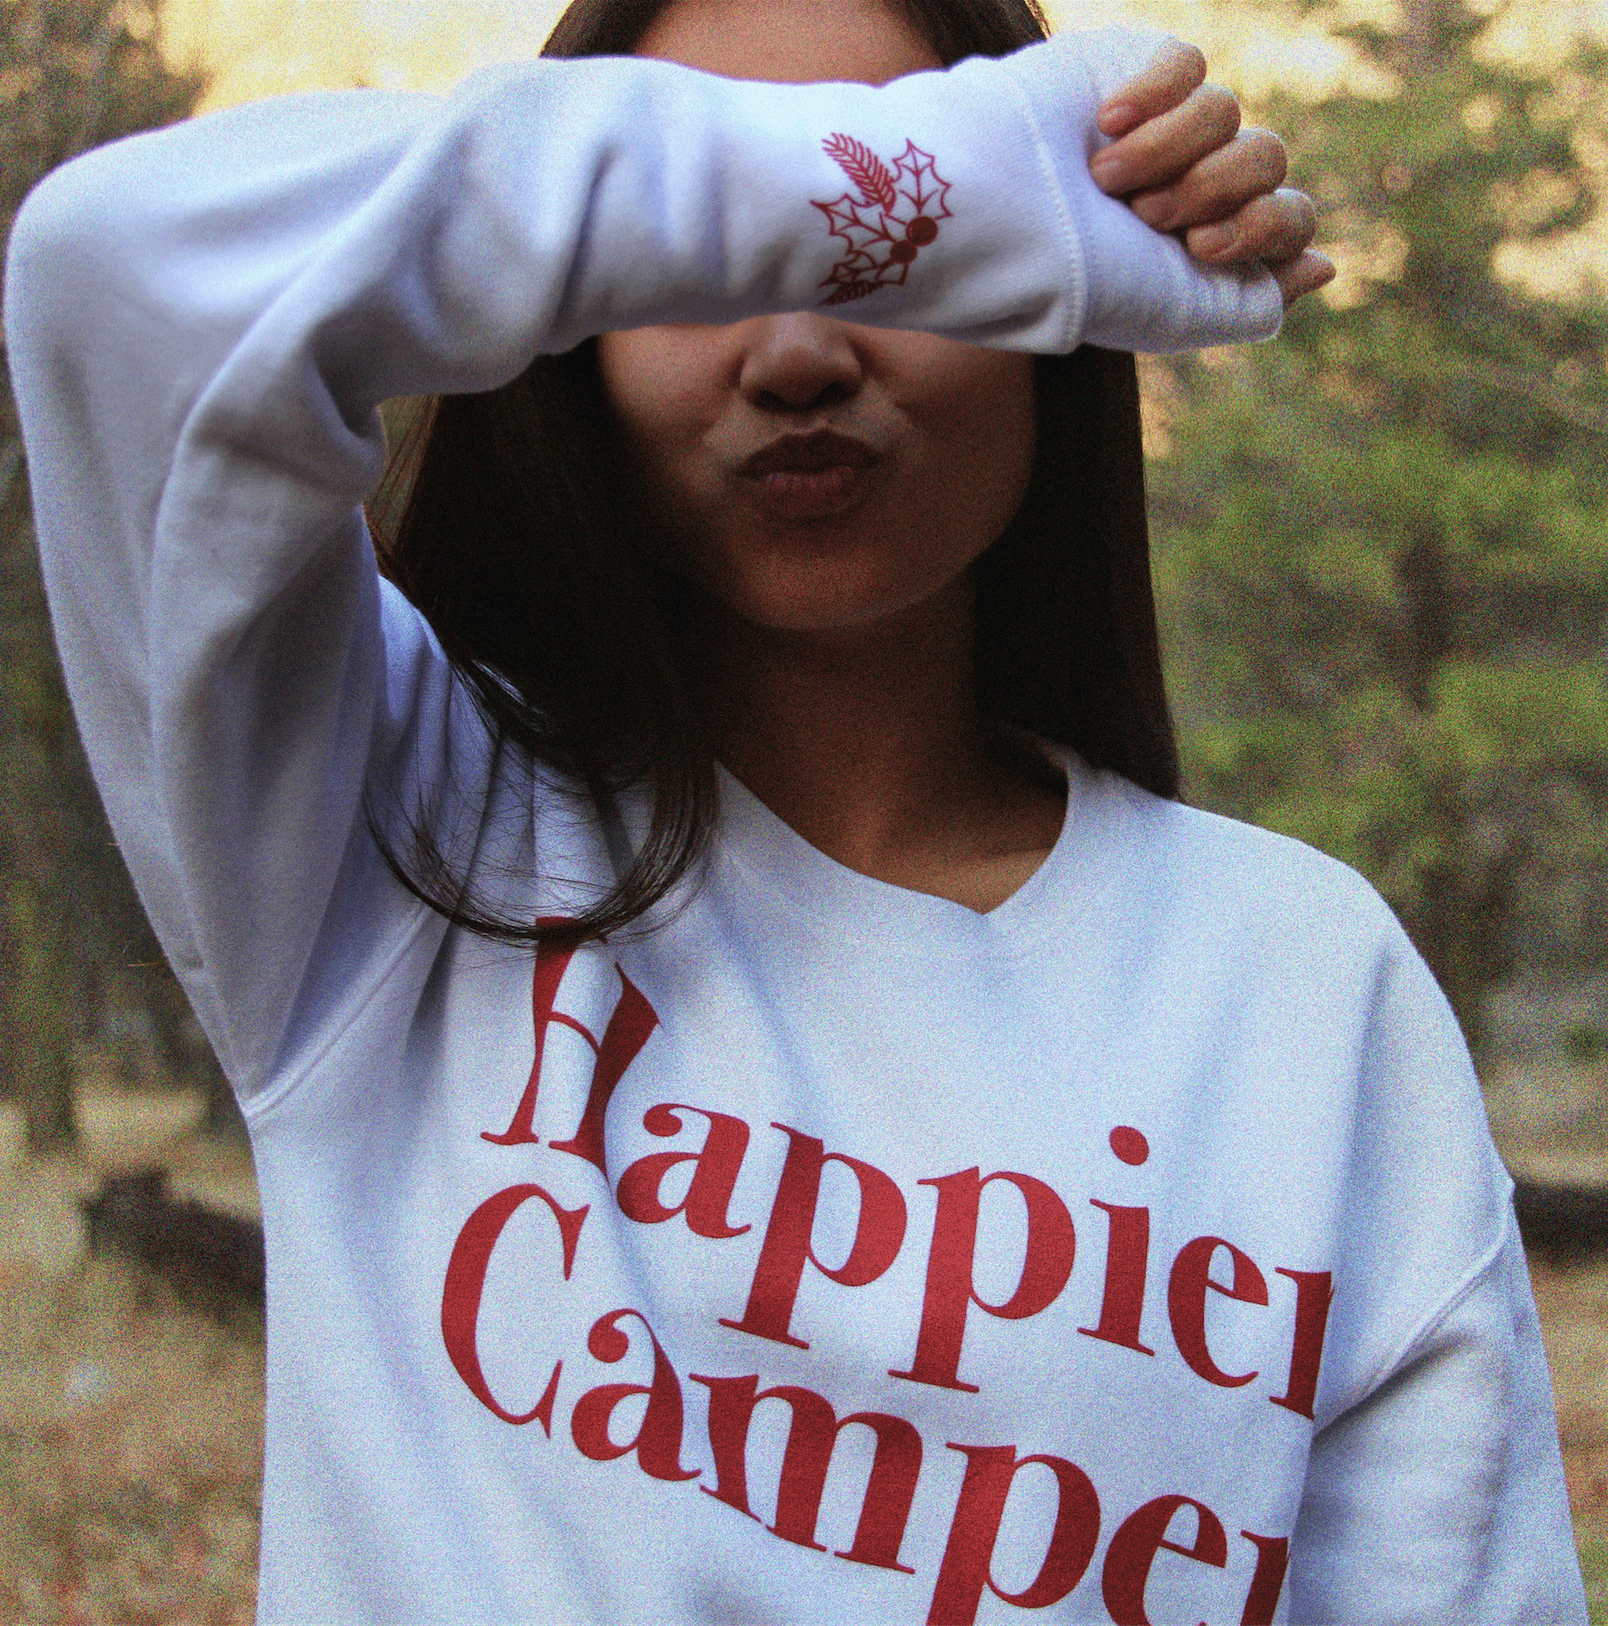 The Parks Holiday Happier Camper Crewneck Sweater